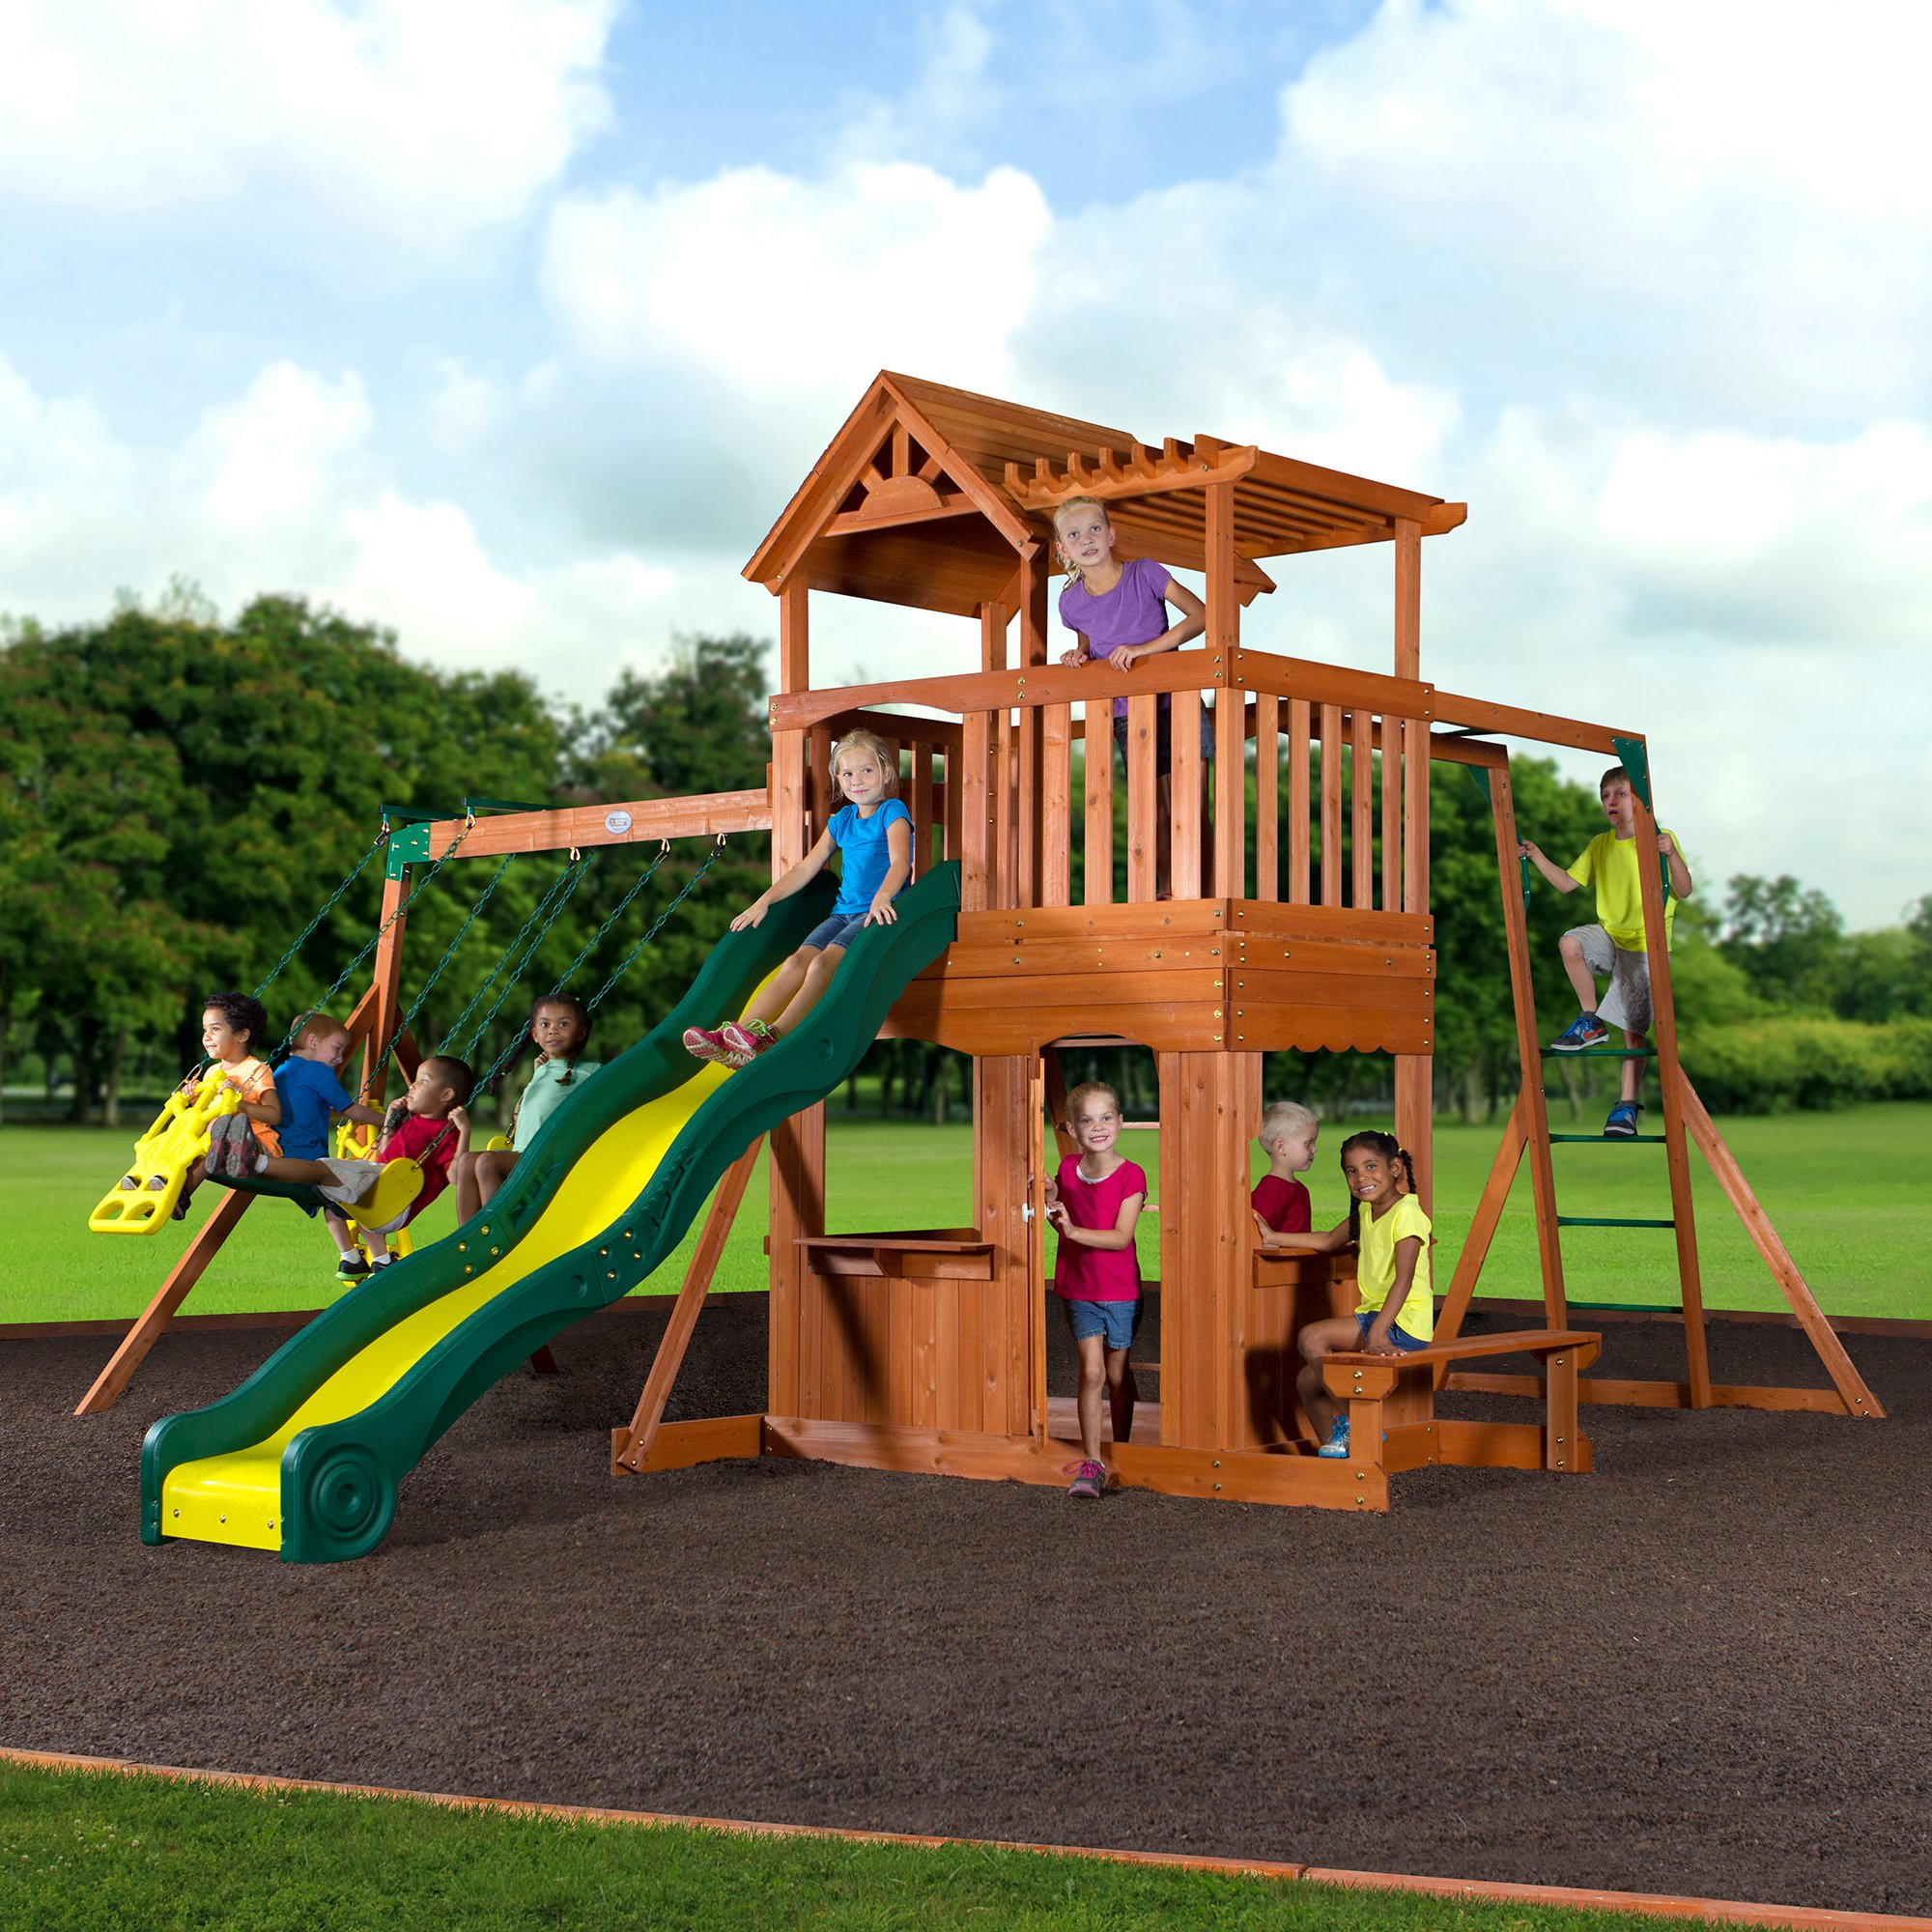 Backyard Discovery Thunder Ridge All Cedar Wood Playset Swing Set by Backyard Discovery (Image #6)